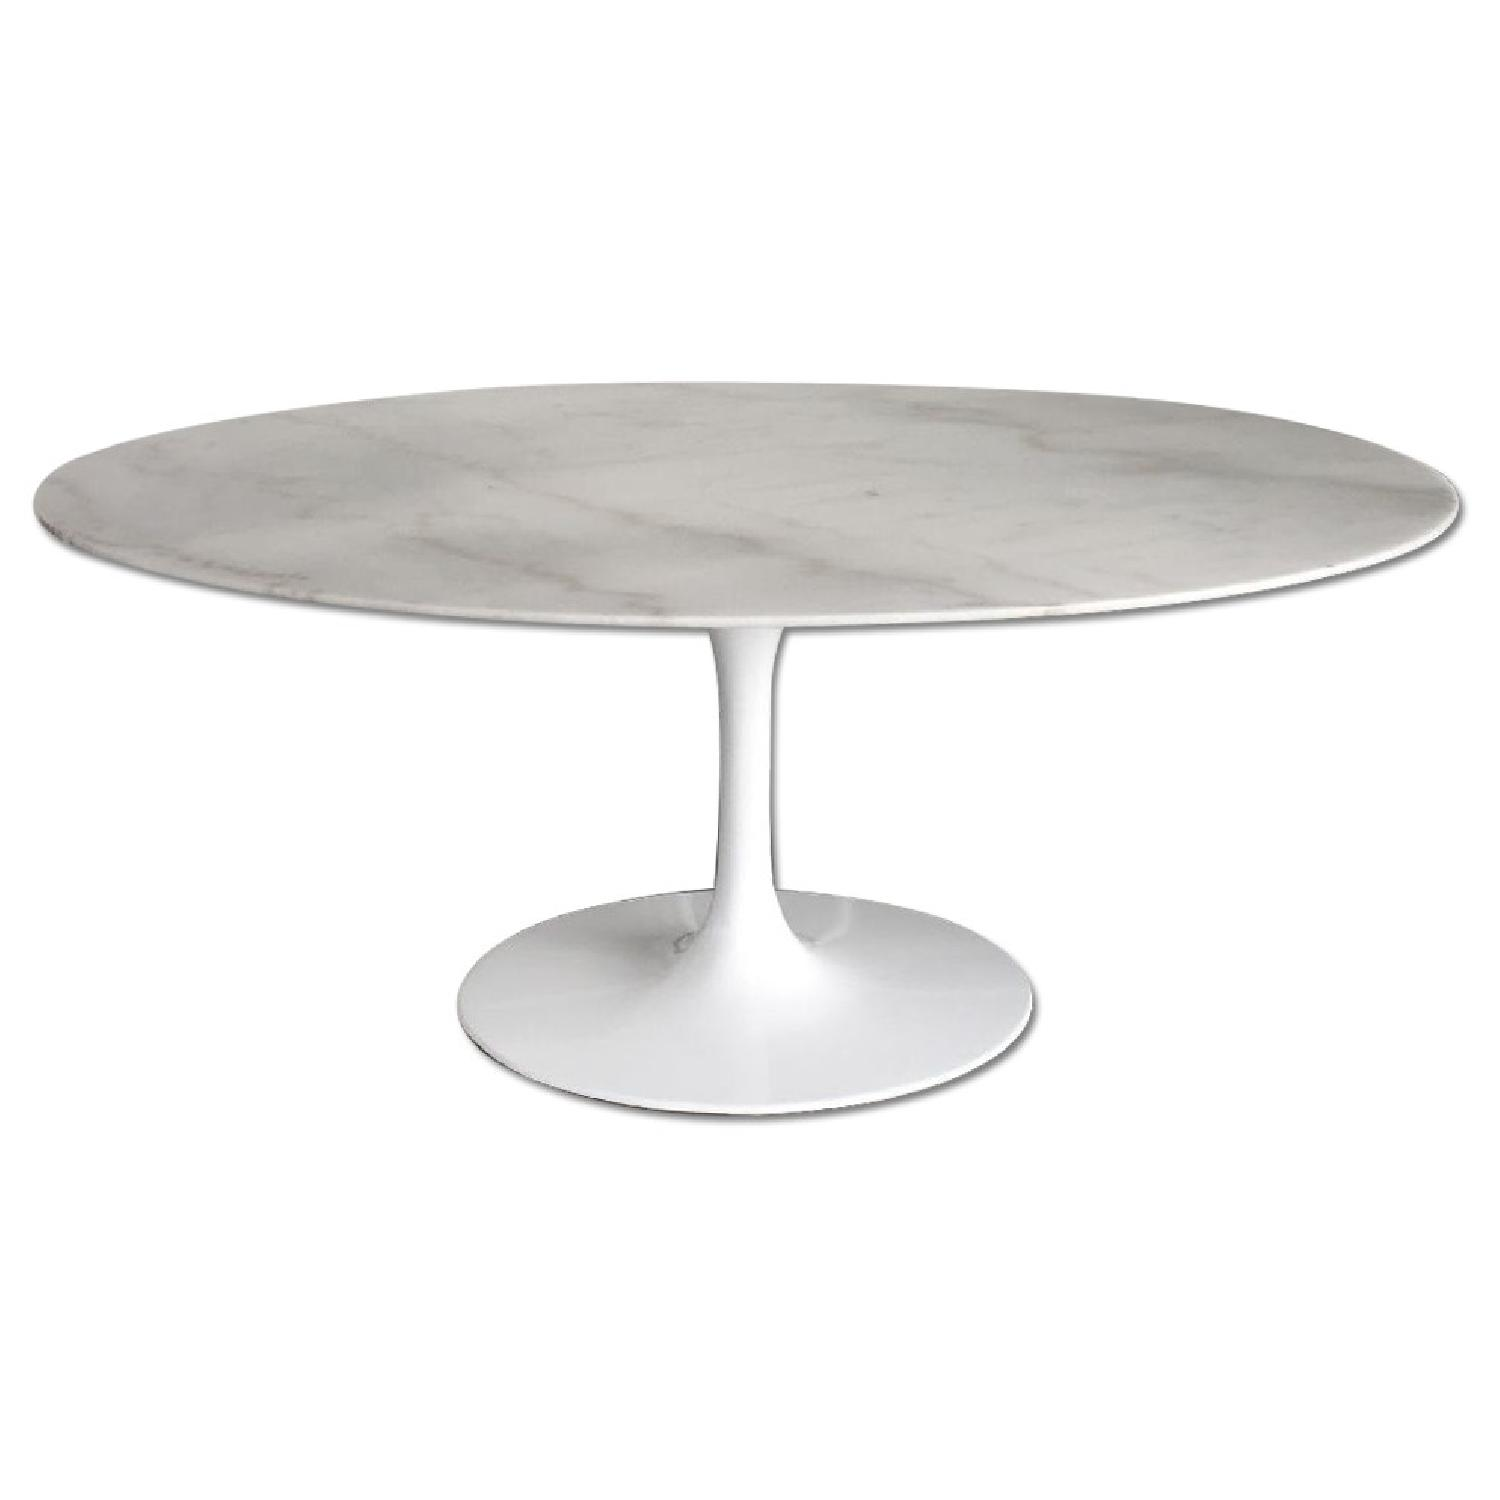 Rove Concepts Oval Tulip Table - image-0